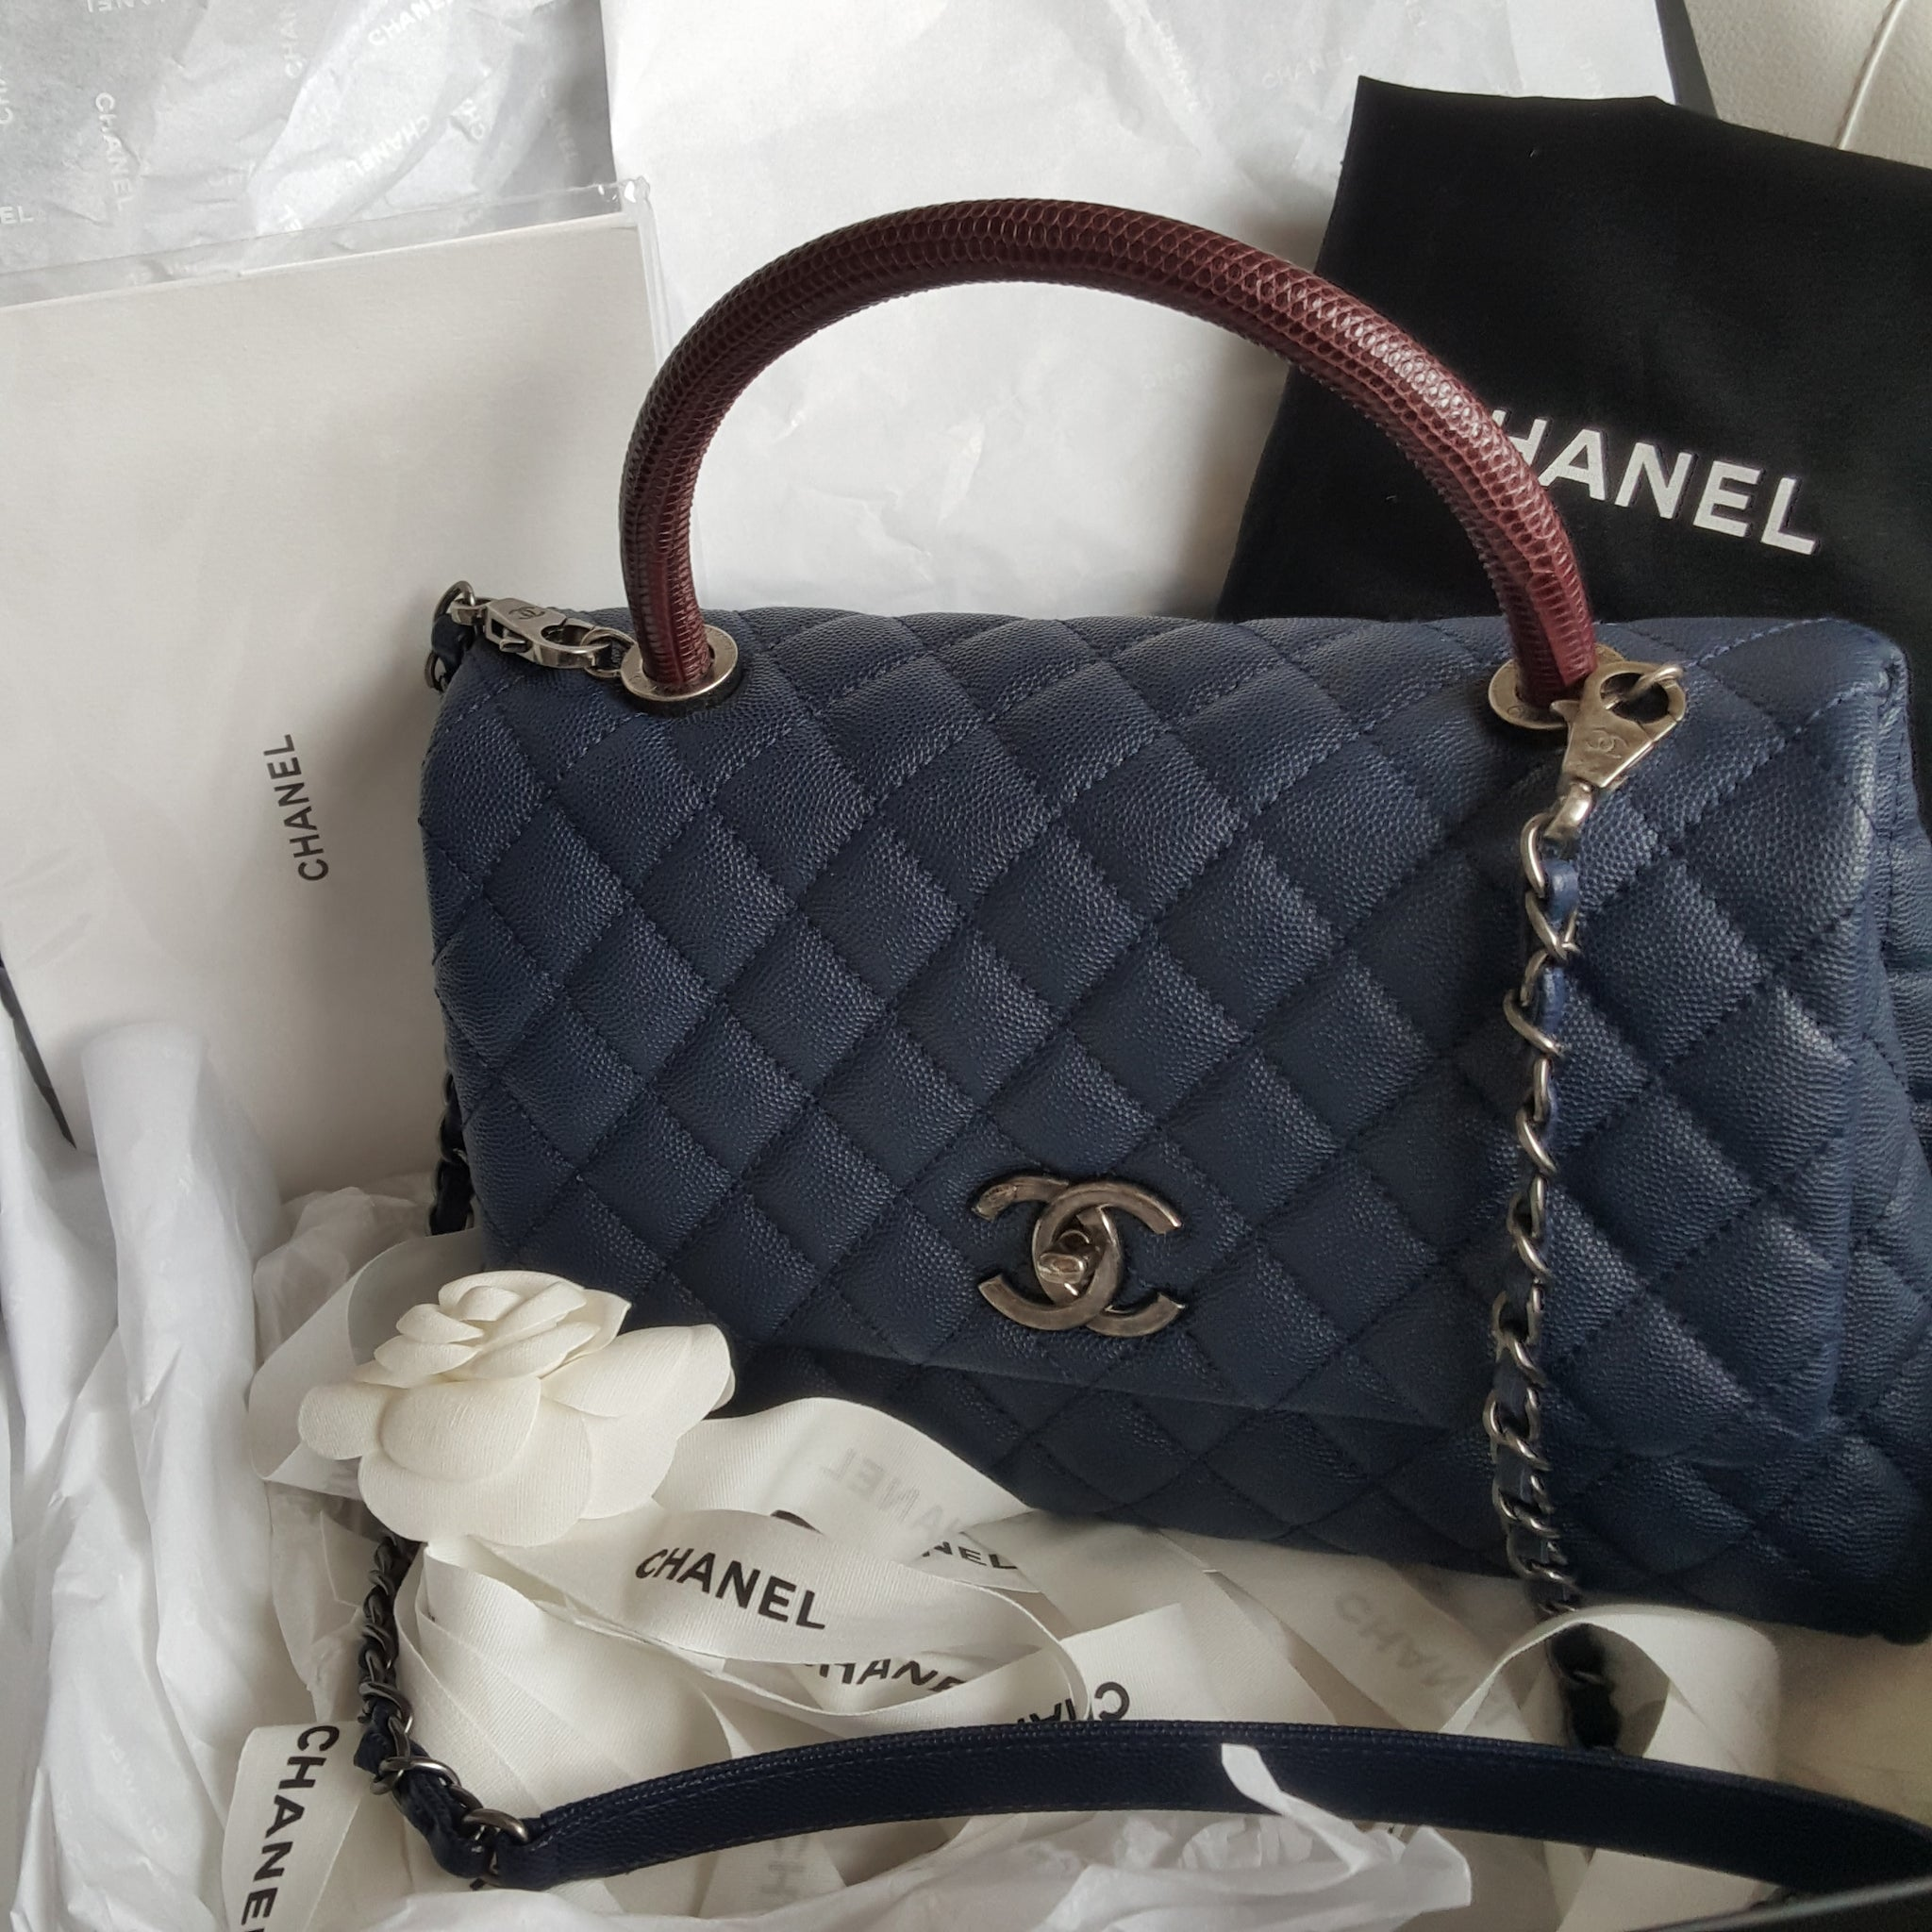 d2f58da7d3f647 Chanel Flap Bag With Top Handle Navy Blue | Stanford Center for ...